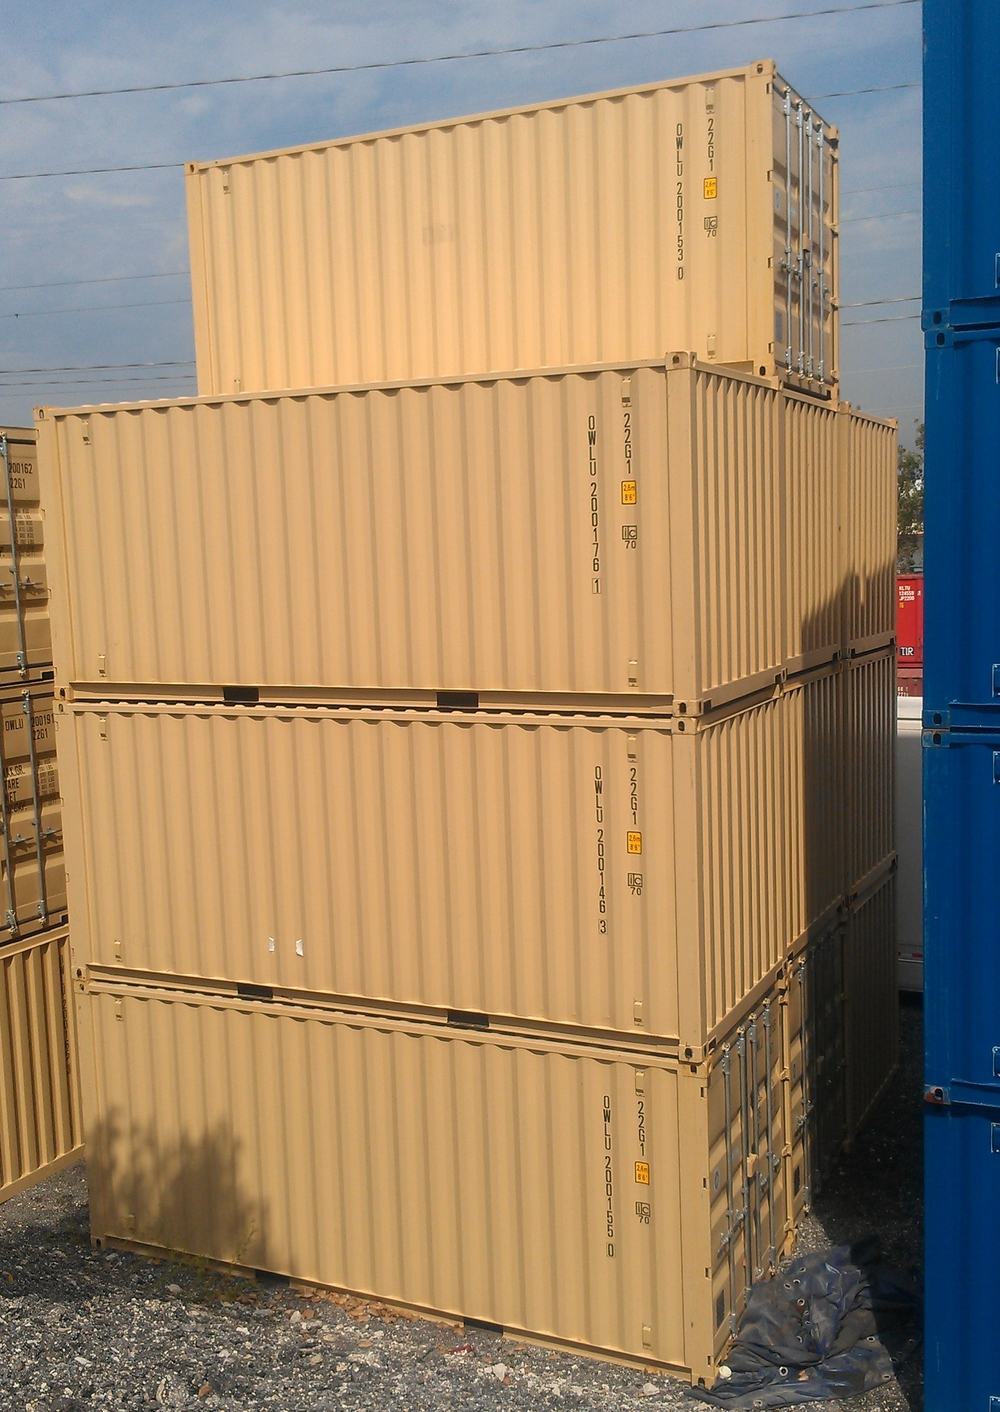 One-trip 20's stacked up.  Notice the space between the containers since they are stacked corner post to corner post.